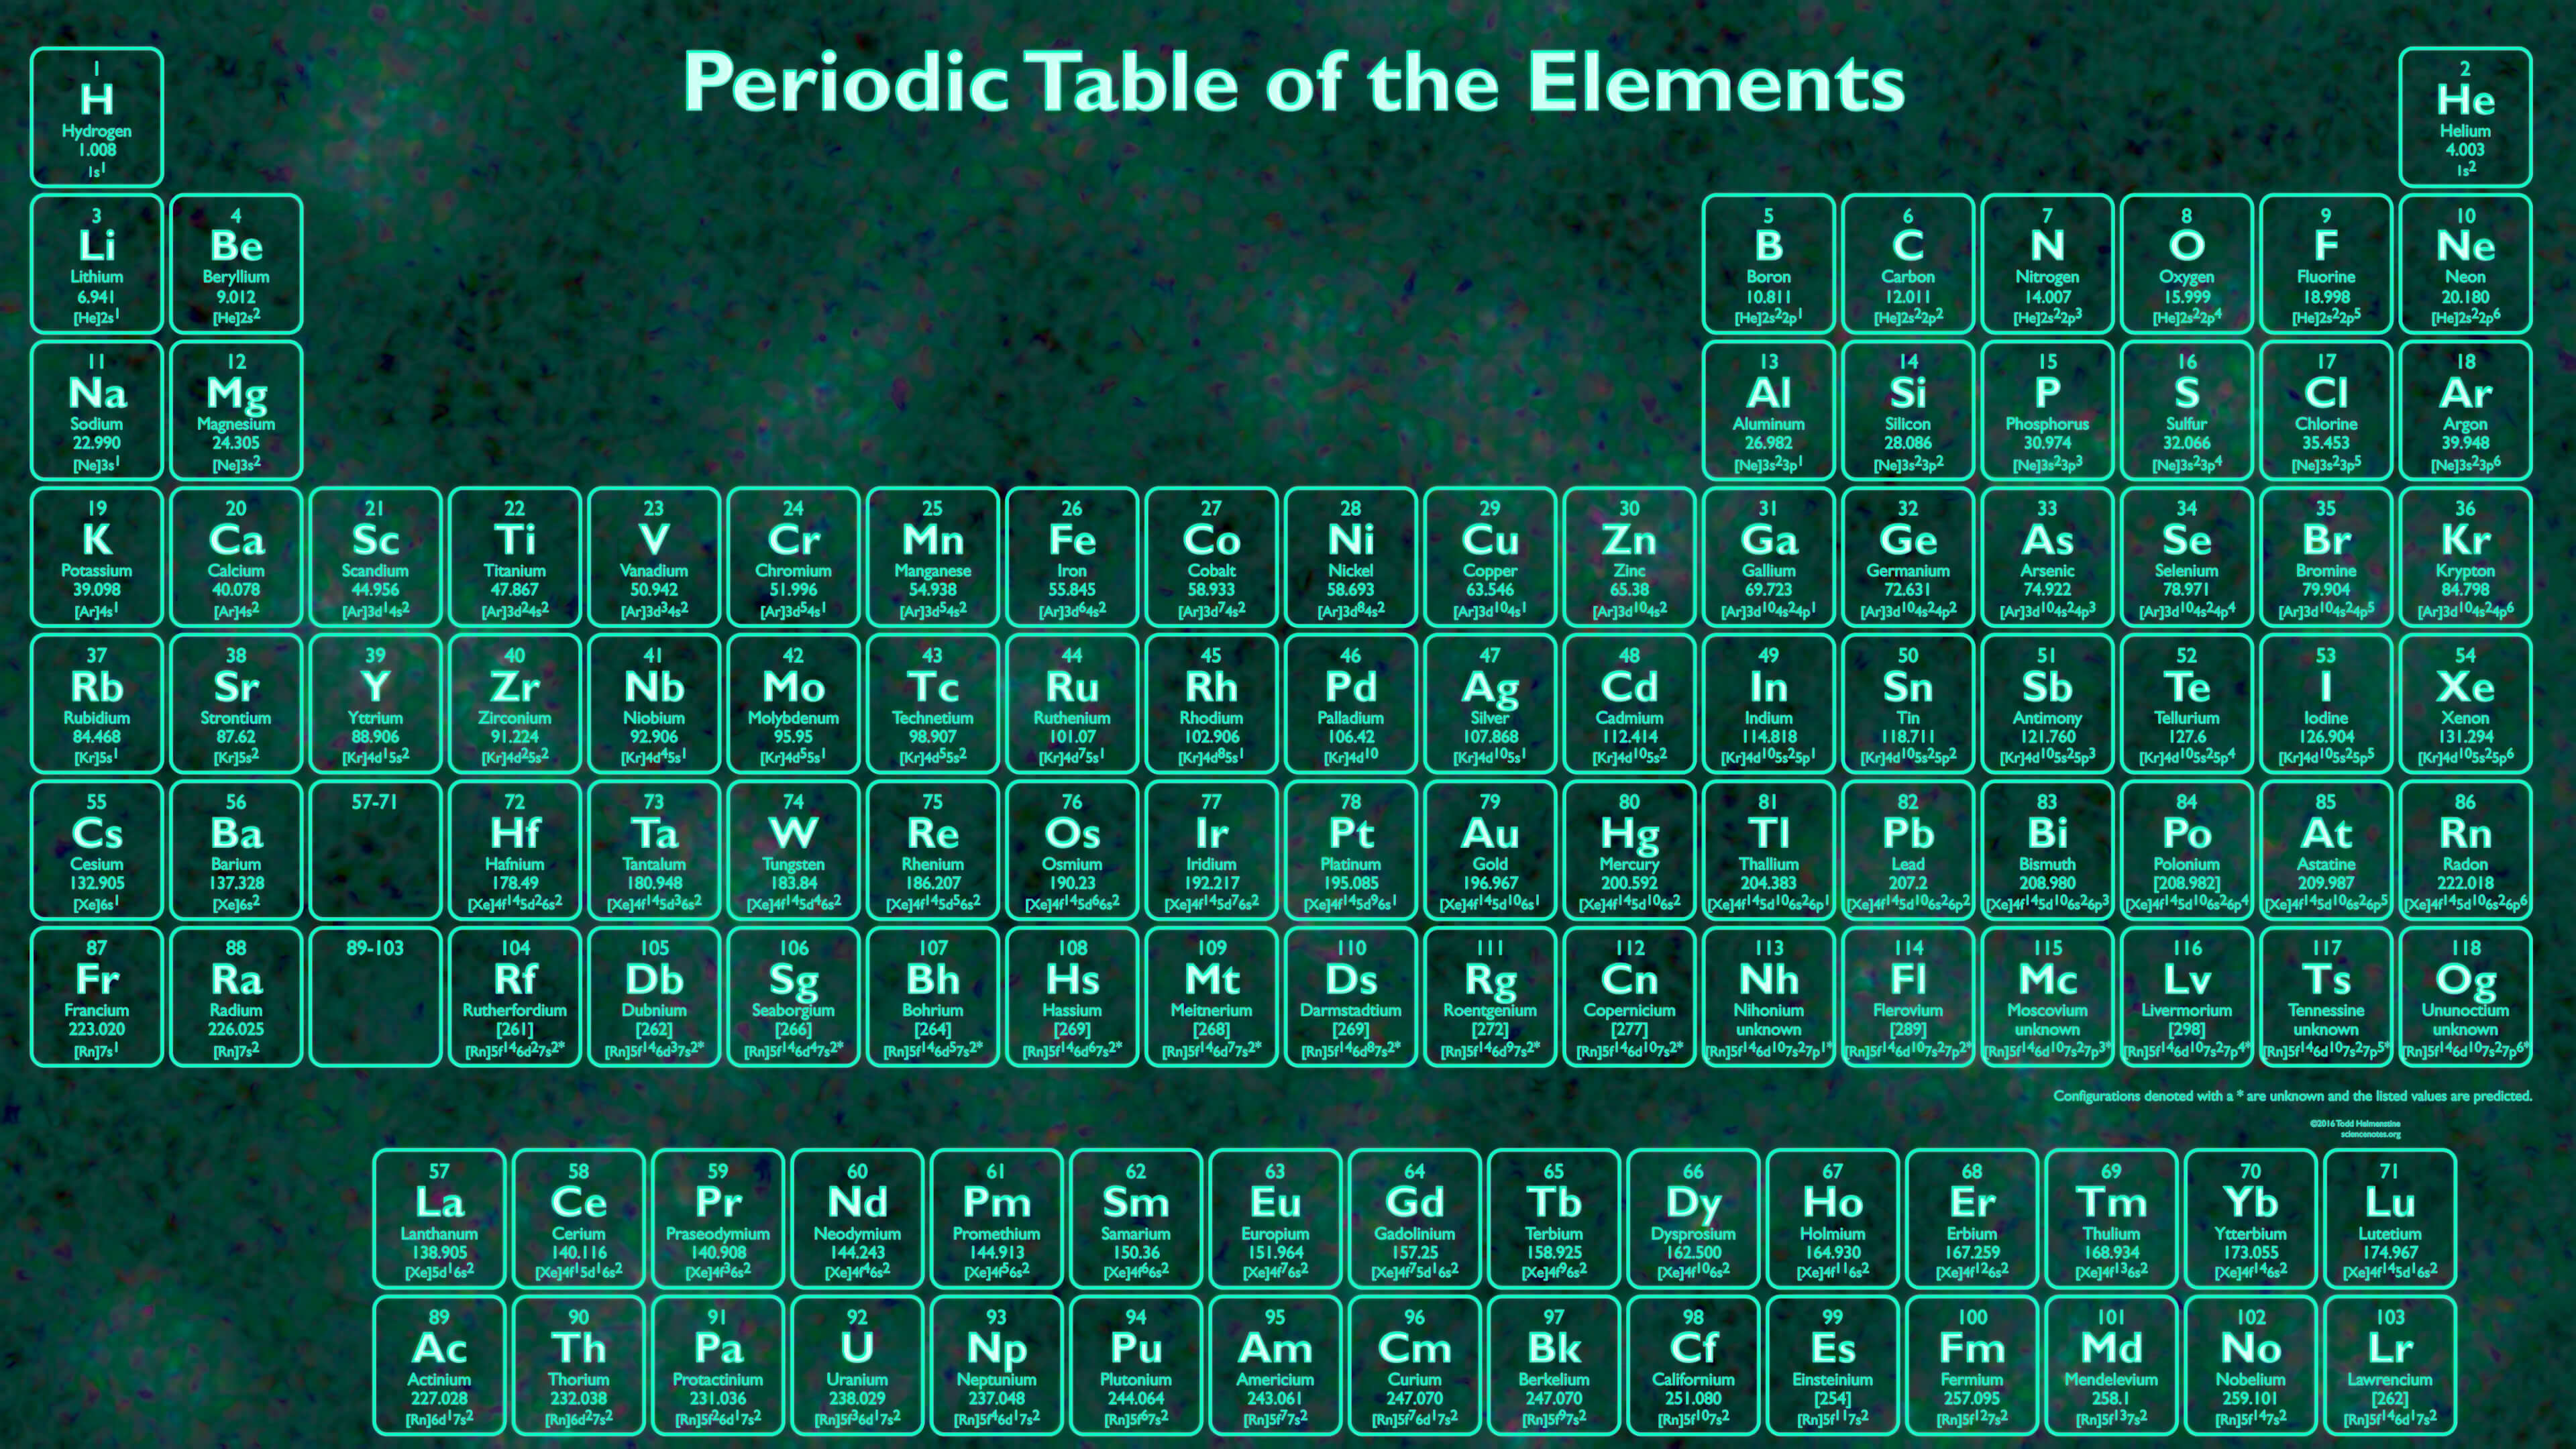 Glow In The Dark 4k Periodic Table Wallpaper With 118 Elements